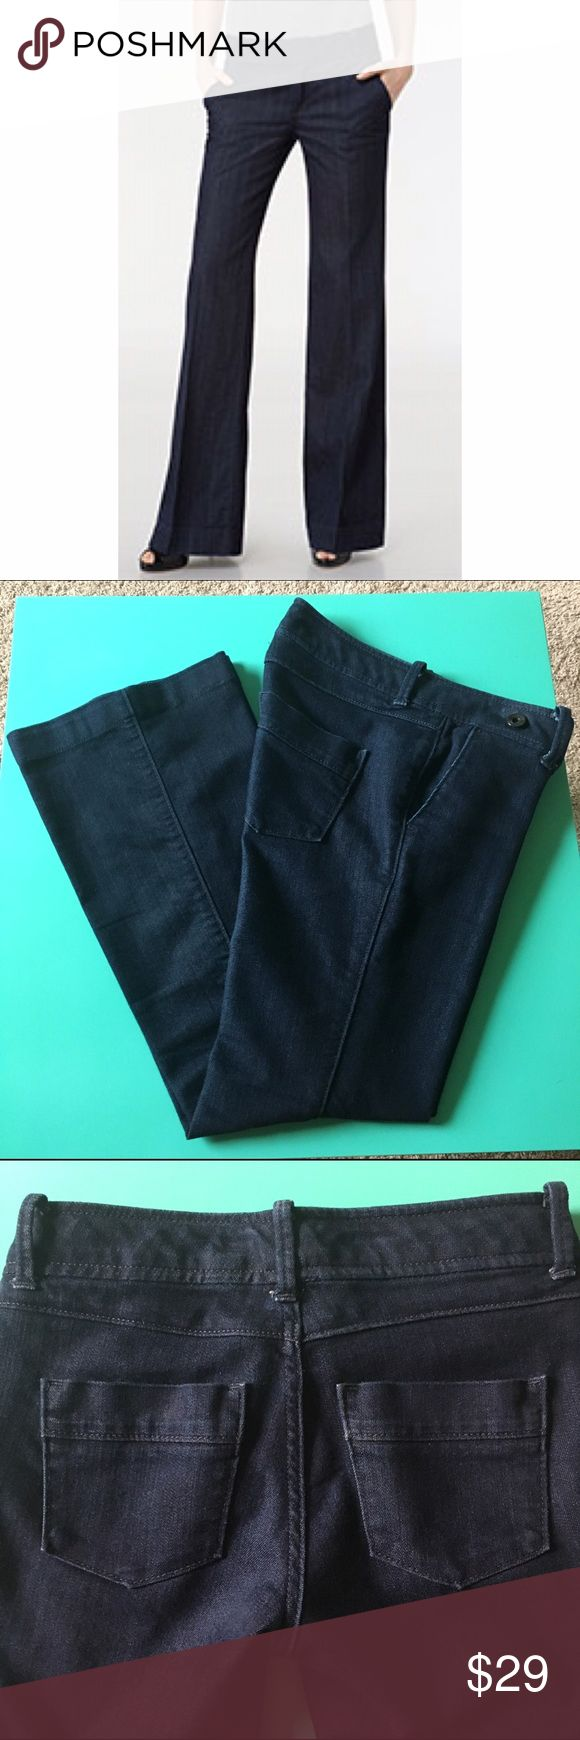 Banana Republic Trouser Jeans Dark Wash 24P/00P Banana Republic limited edition trouser jeans.  MSRP $98.  In excellent pre-owned condition.  Only been tried on and no flaws.  Size 24P / 00P.  Approximately 27 inch inseam.   72% cotton and 28% polyester.  Clean dark wash.  NO TRADES but I accept fair offers through the offer button. 10% bundle discount within my closet. Will be shipped out immediately after purchase from a smoke free environment. Banana Republic Jeans Flare & Wide Leg